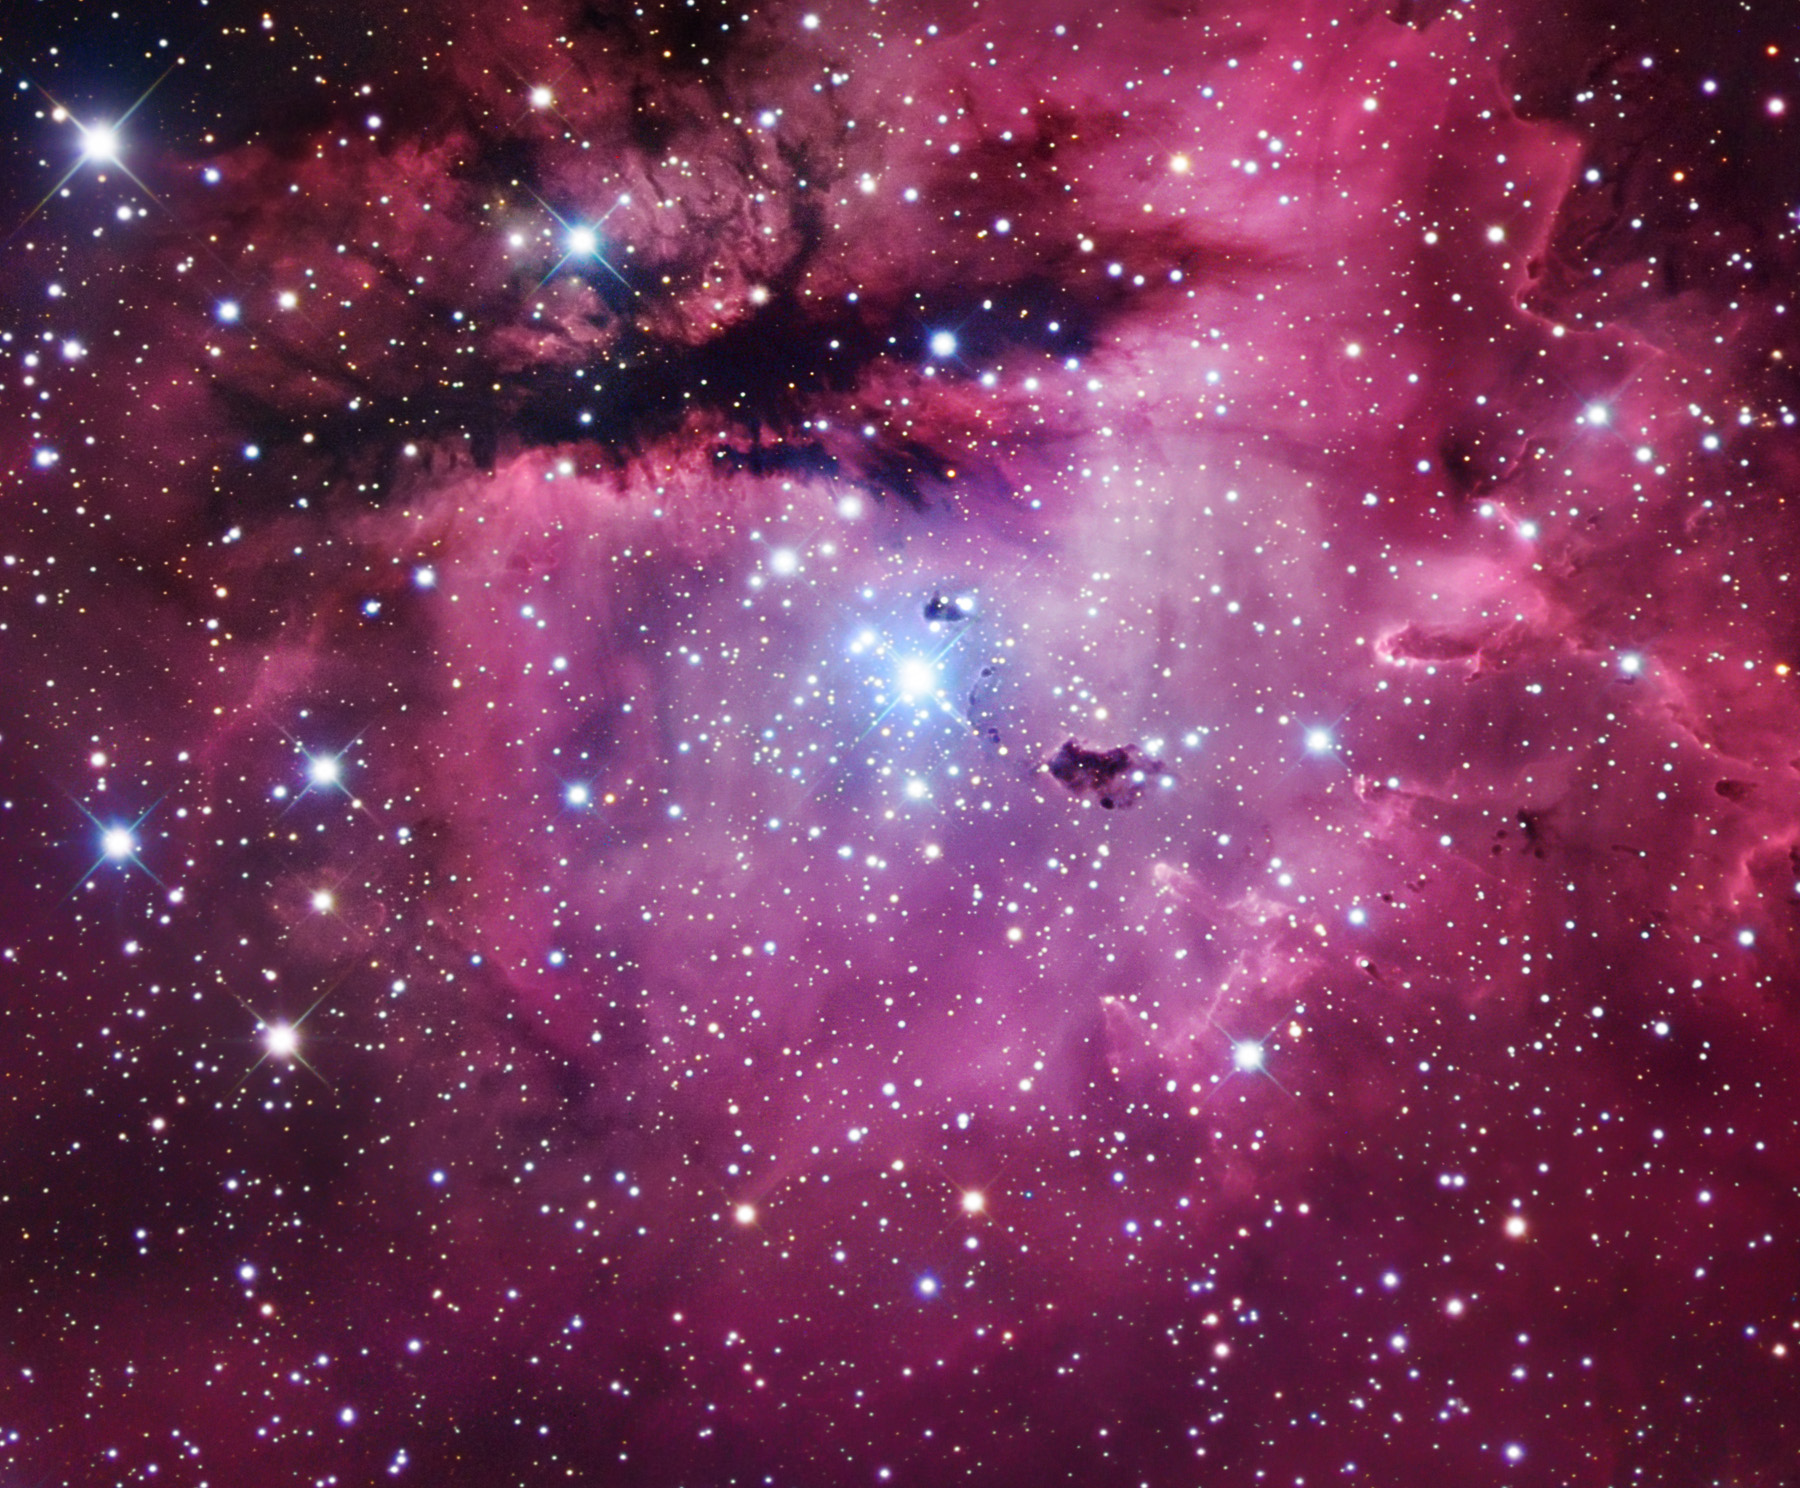 Pink Nebula Tumblr (page 2) - Pics about space